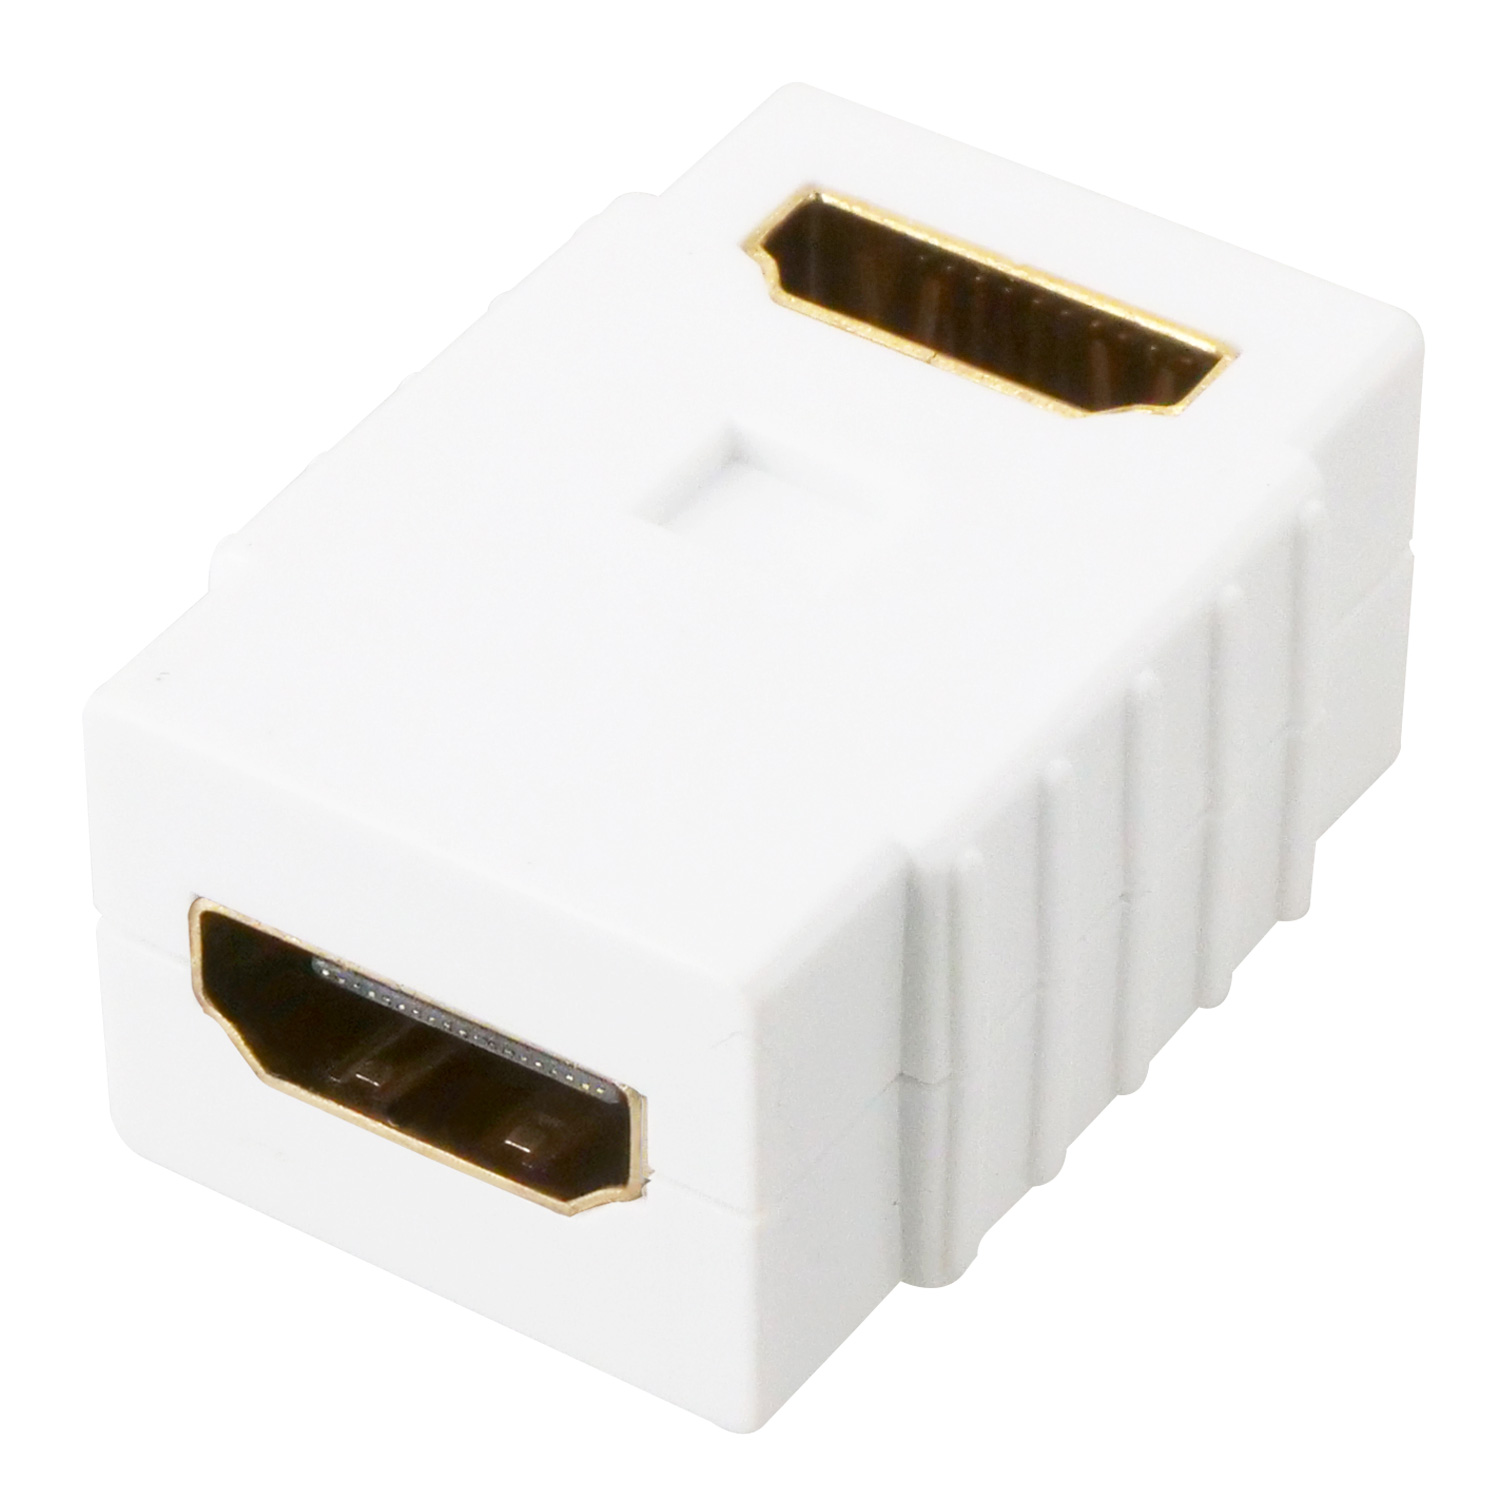 HDMI Coupler Female to Female Right Angle, Flush